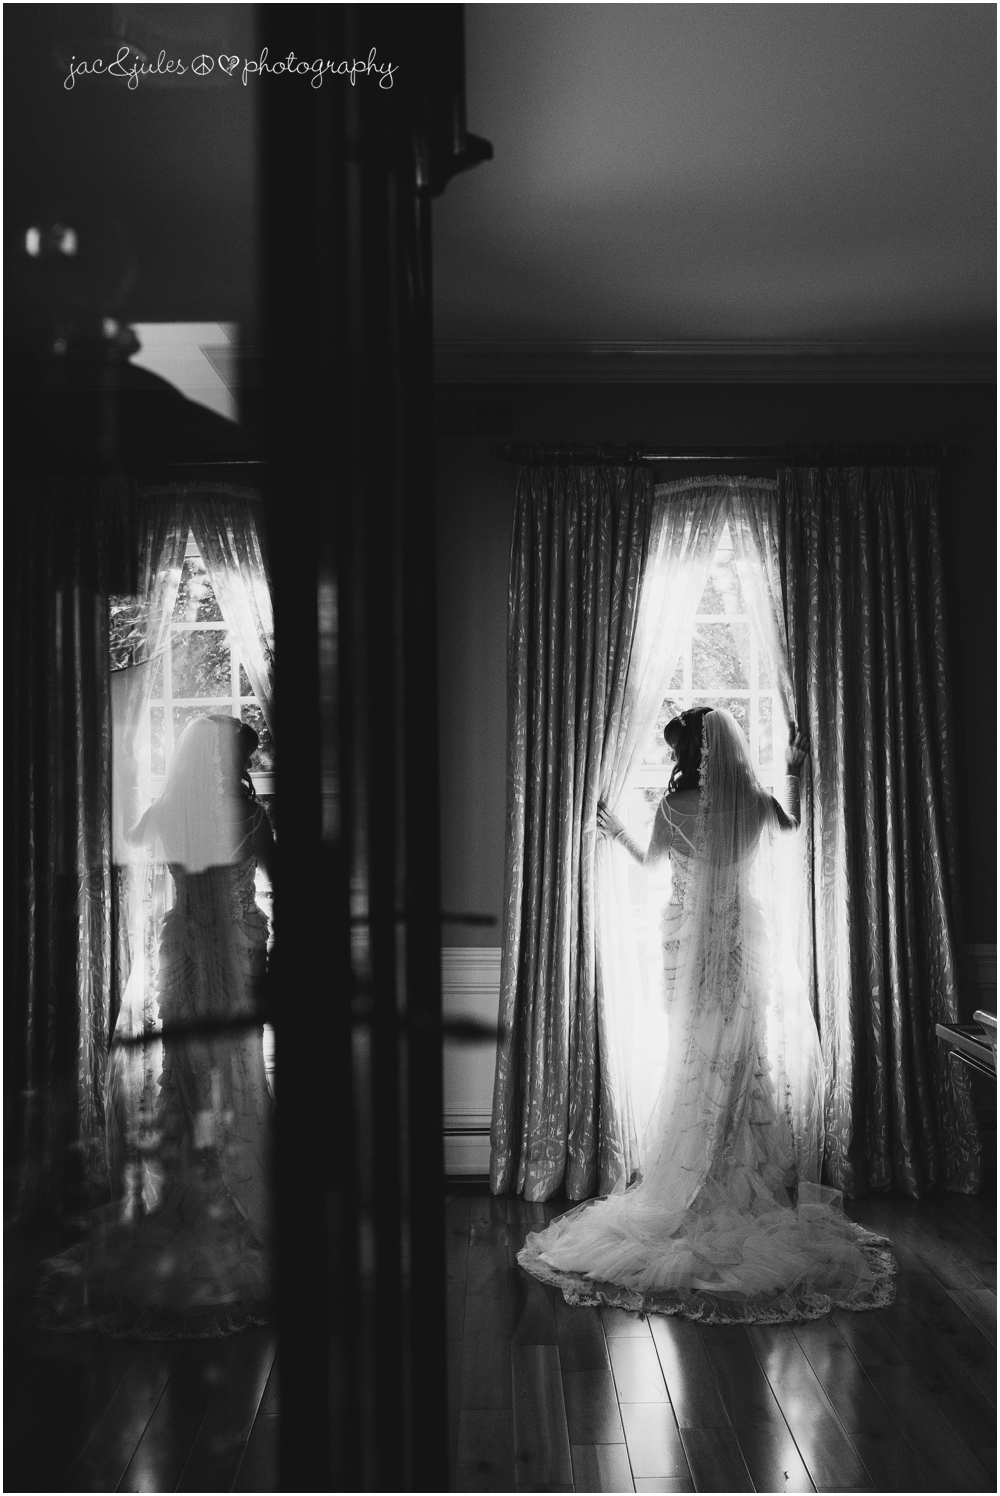 jacnjules photographs a bride in her home in franklin lakes nj